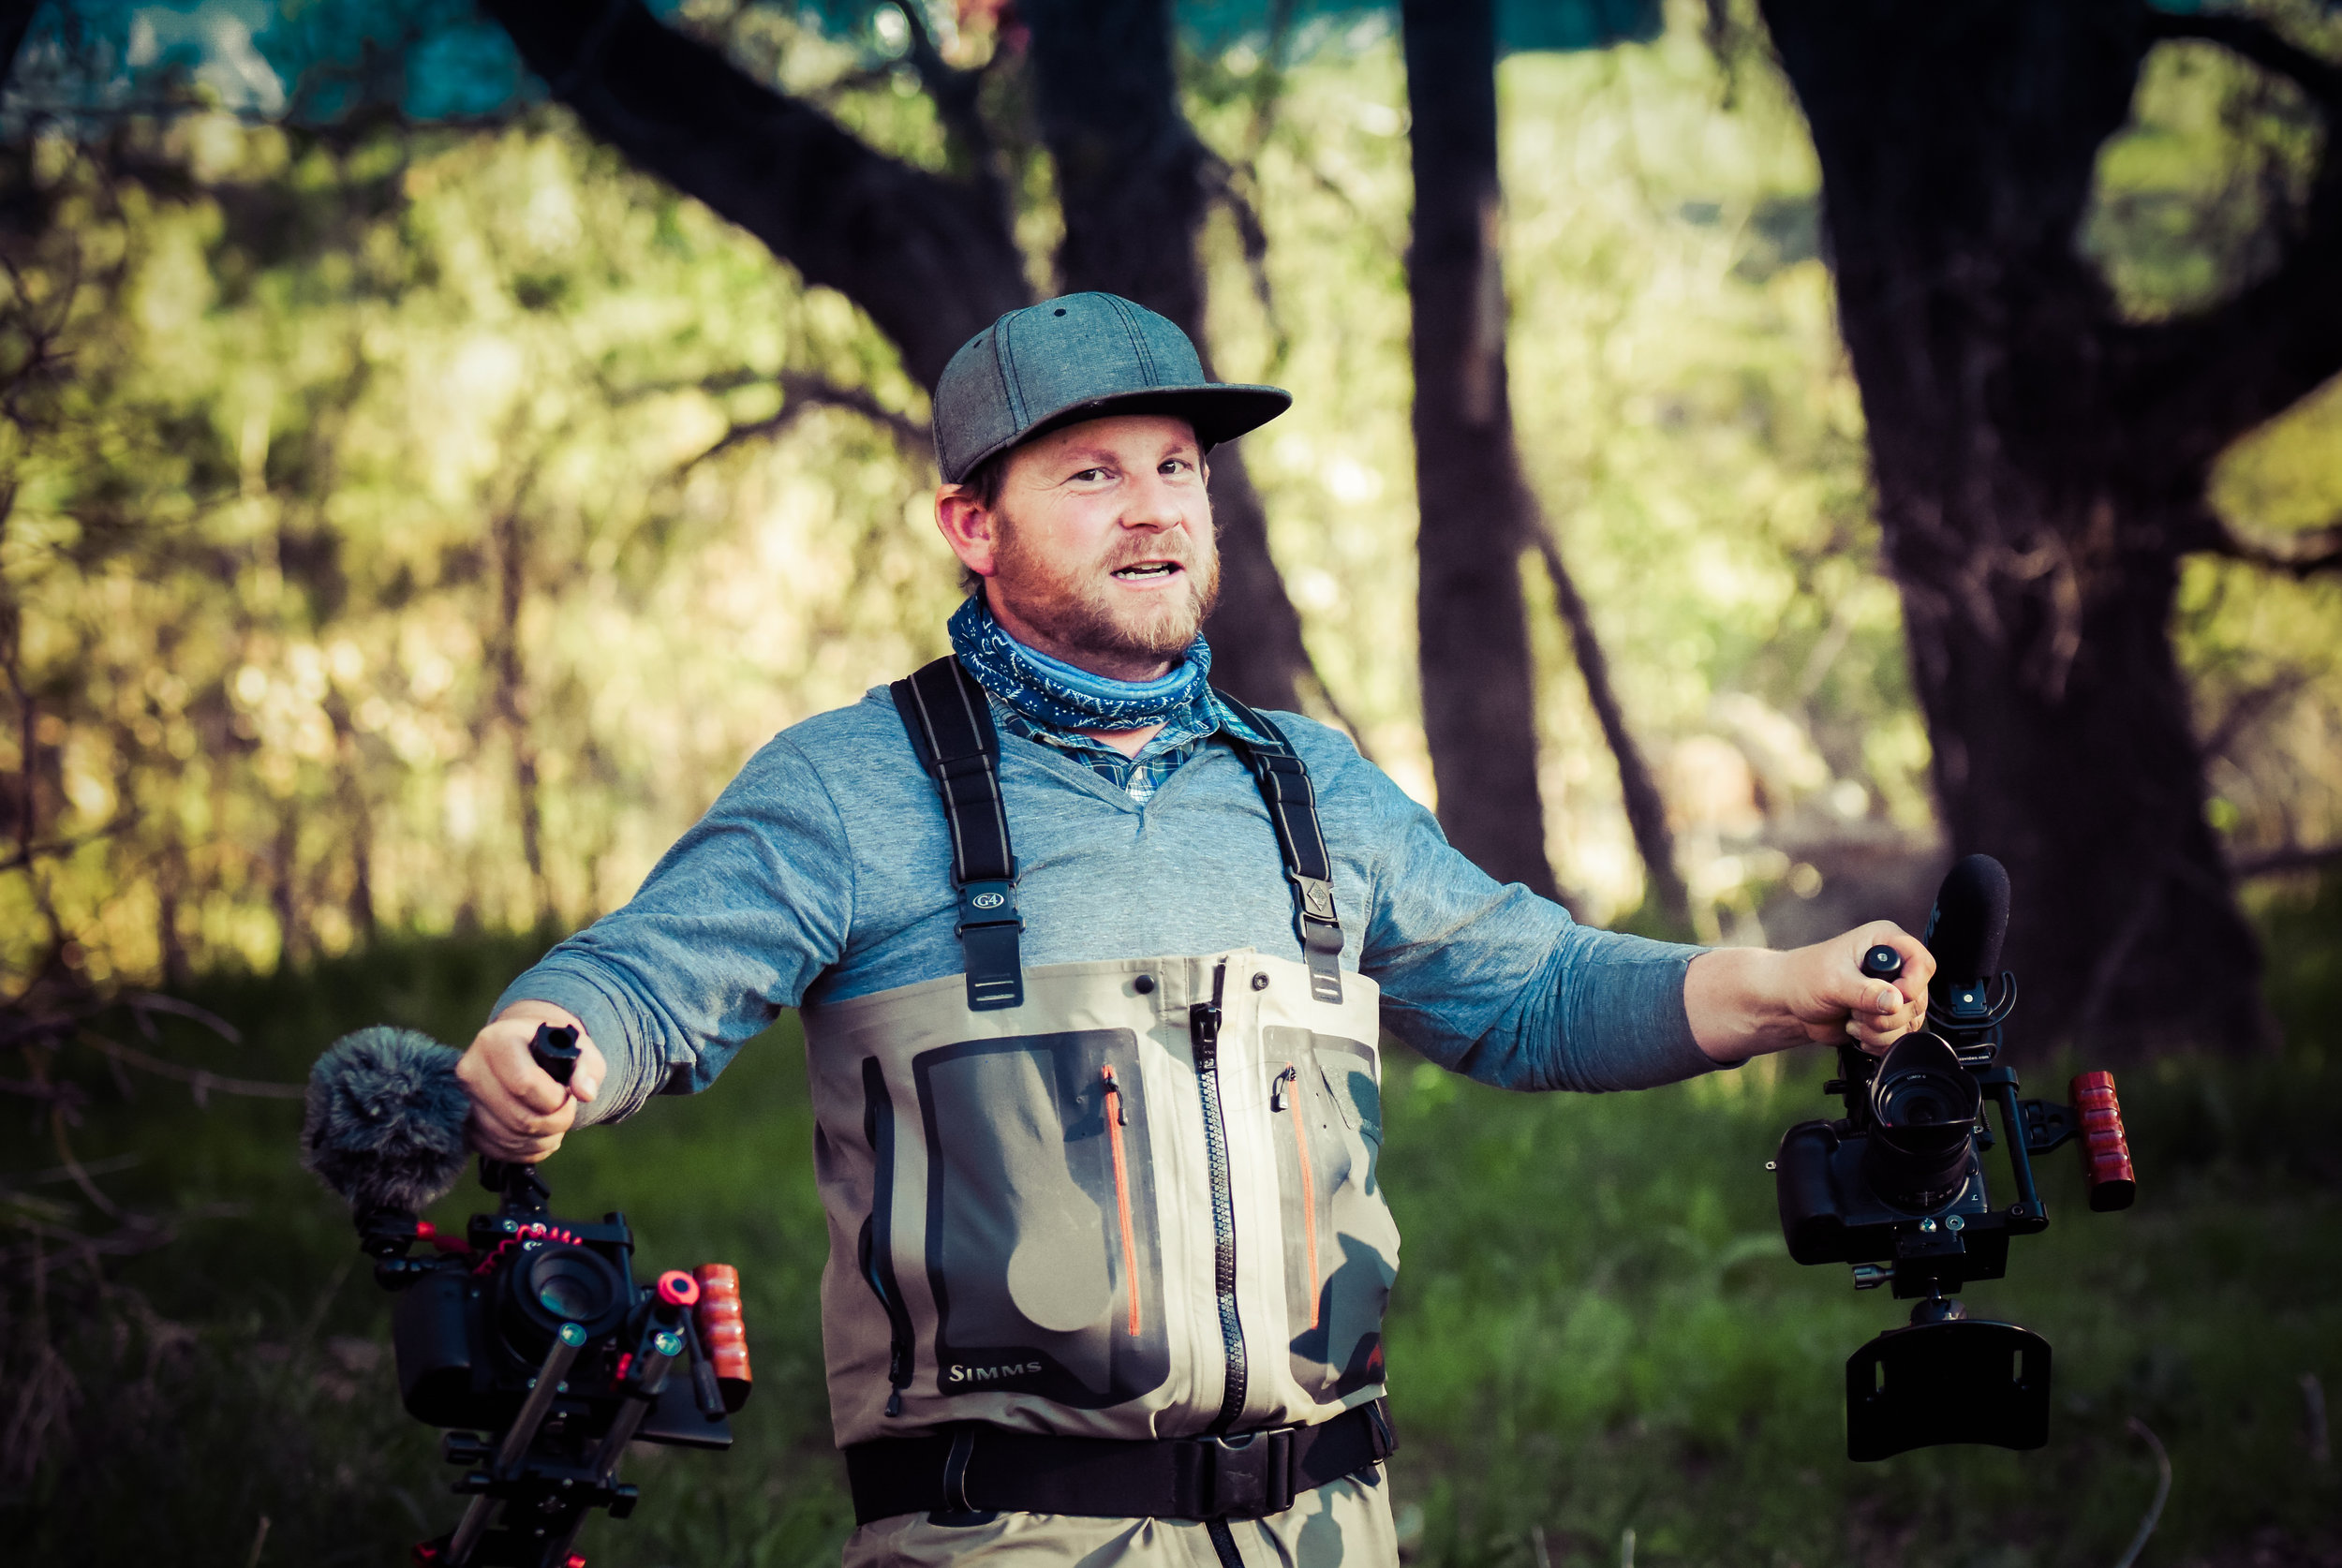 Curtis Howard of Sheep Creek Films